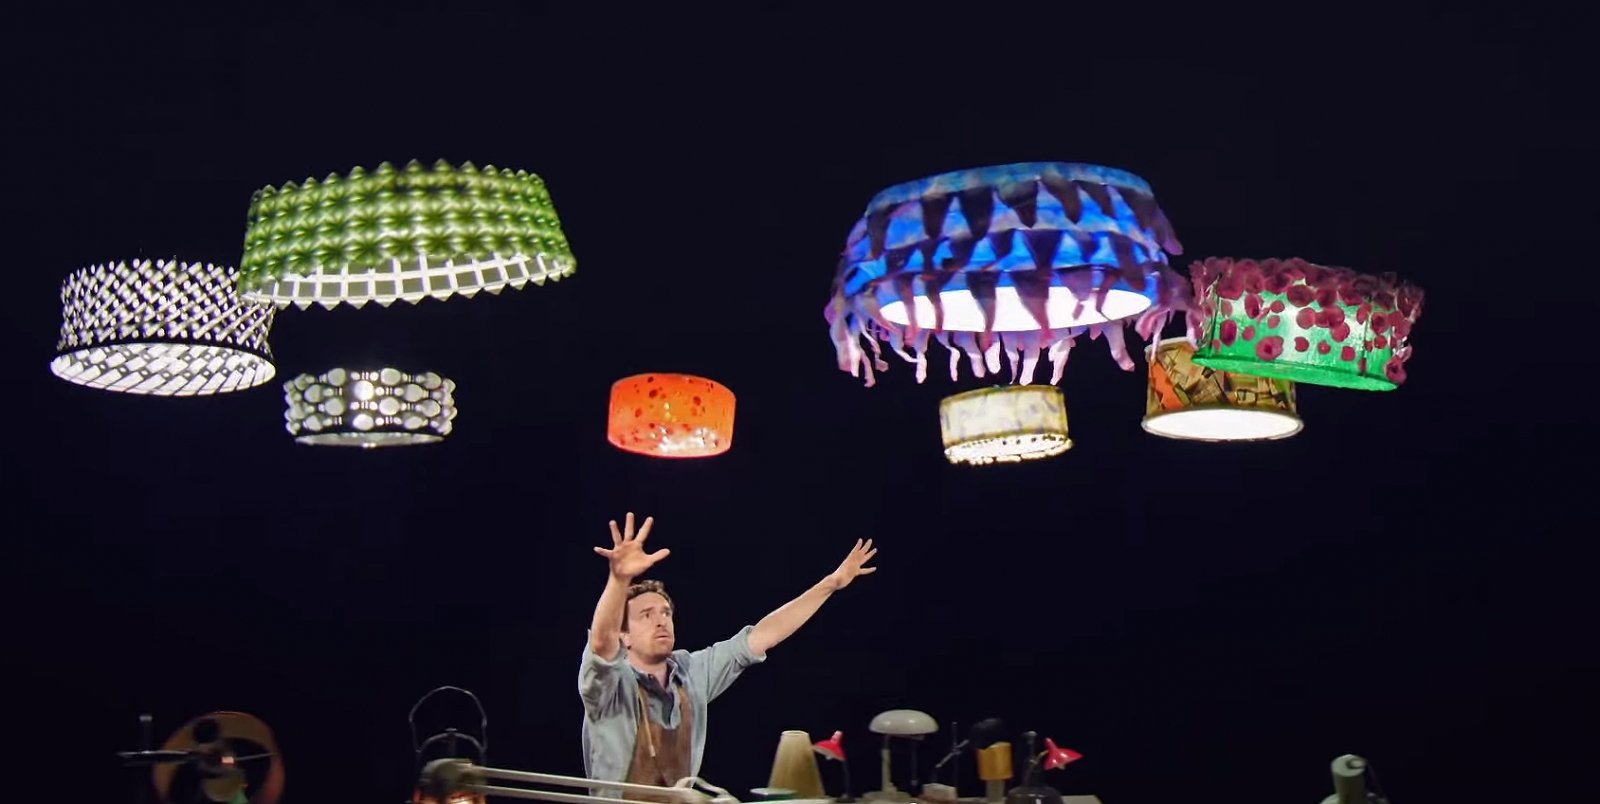 Cirque du Soleil\'s new short film features a human performer dancing with a fleet of helicopter drones playing magic flying lamps